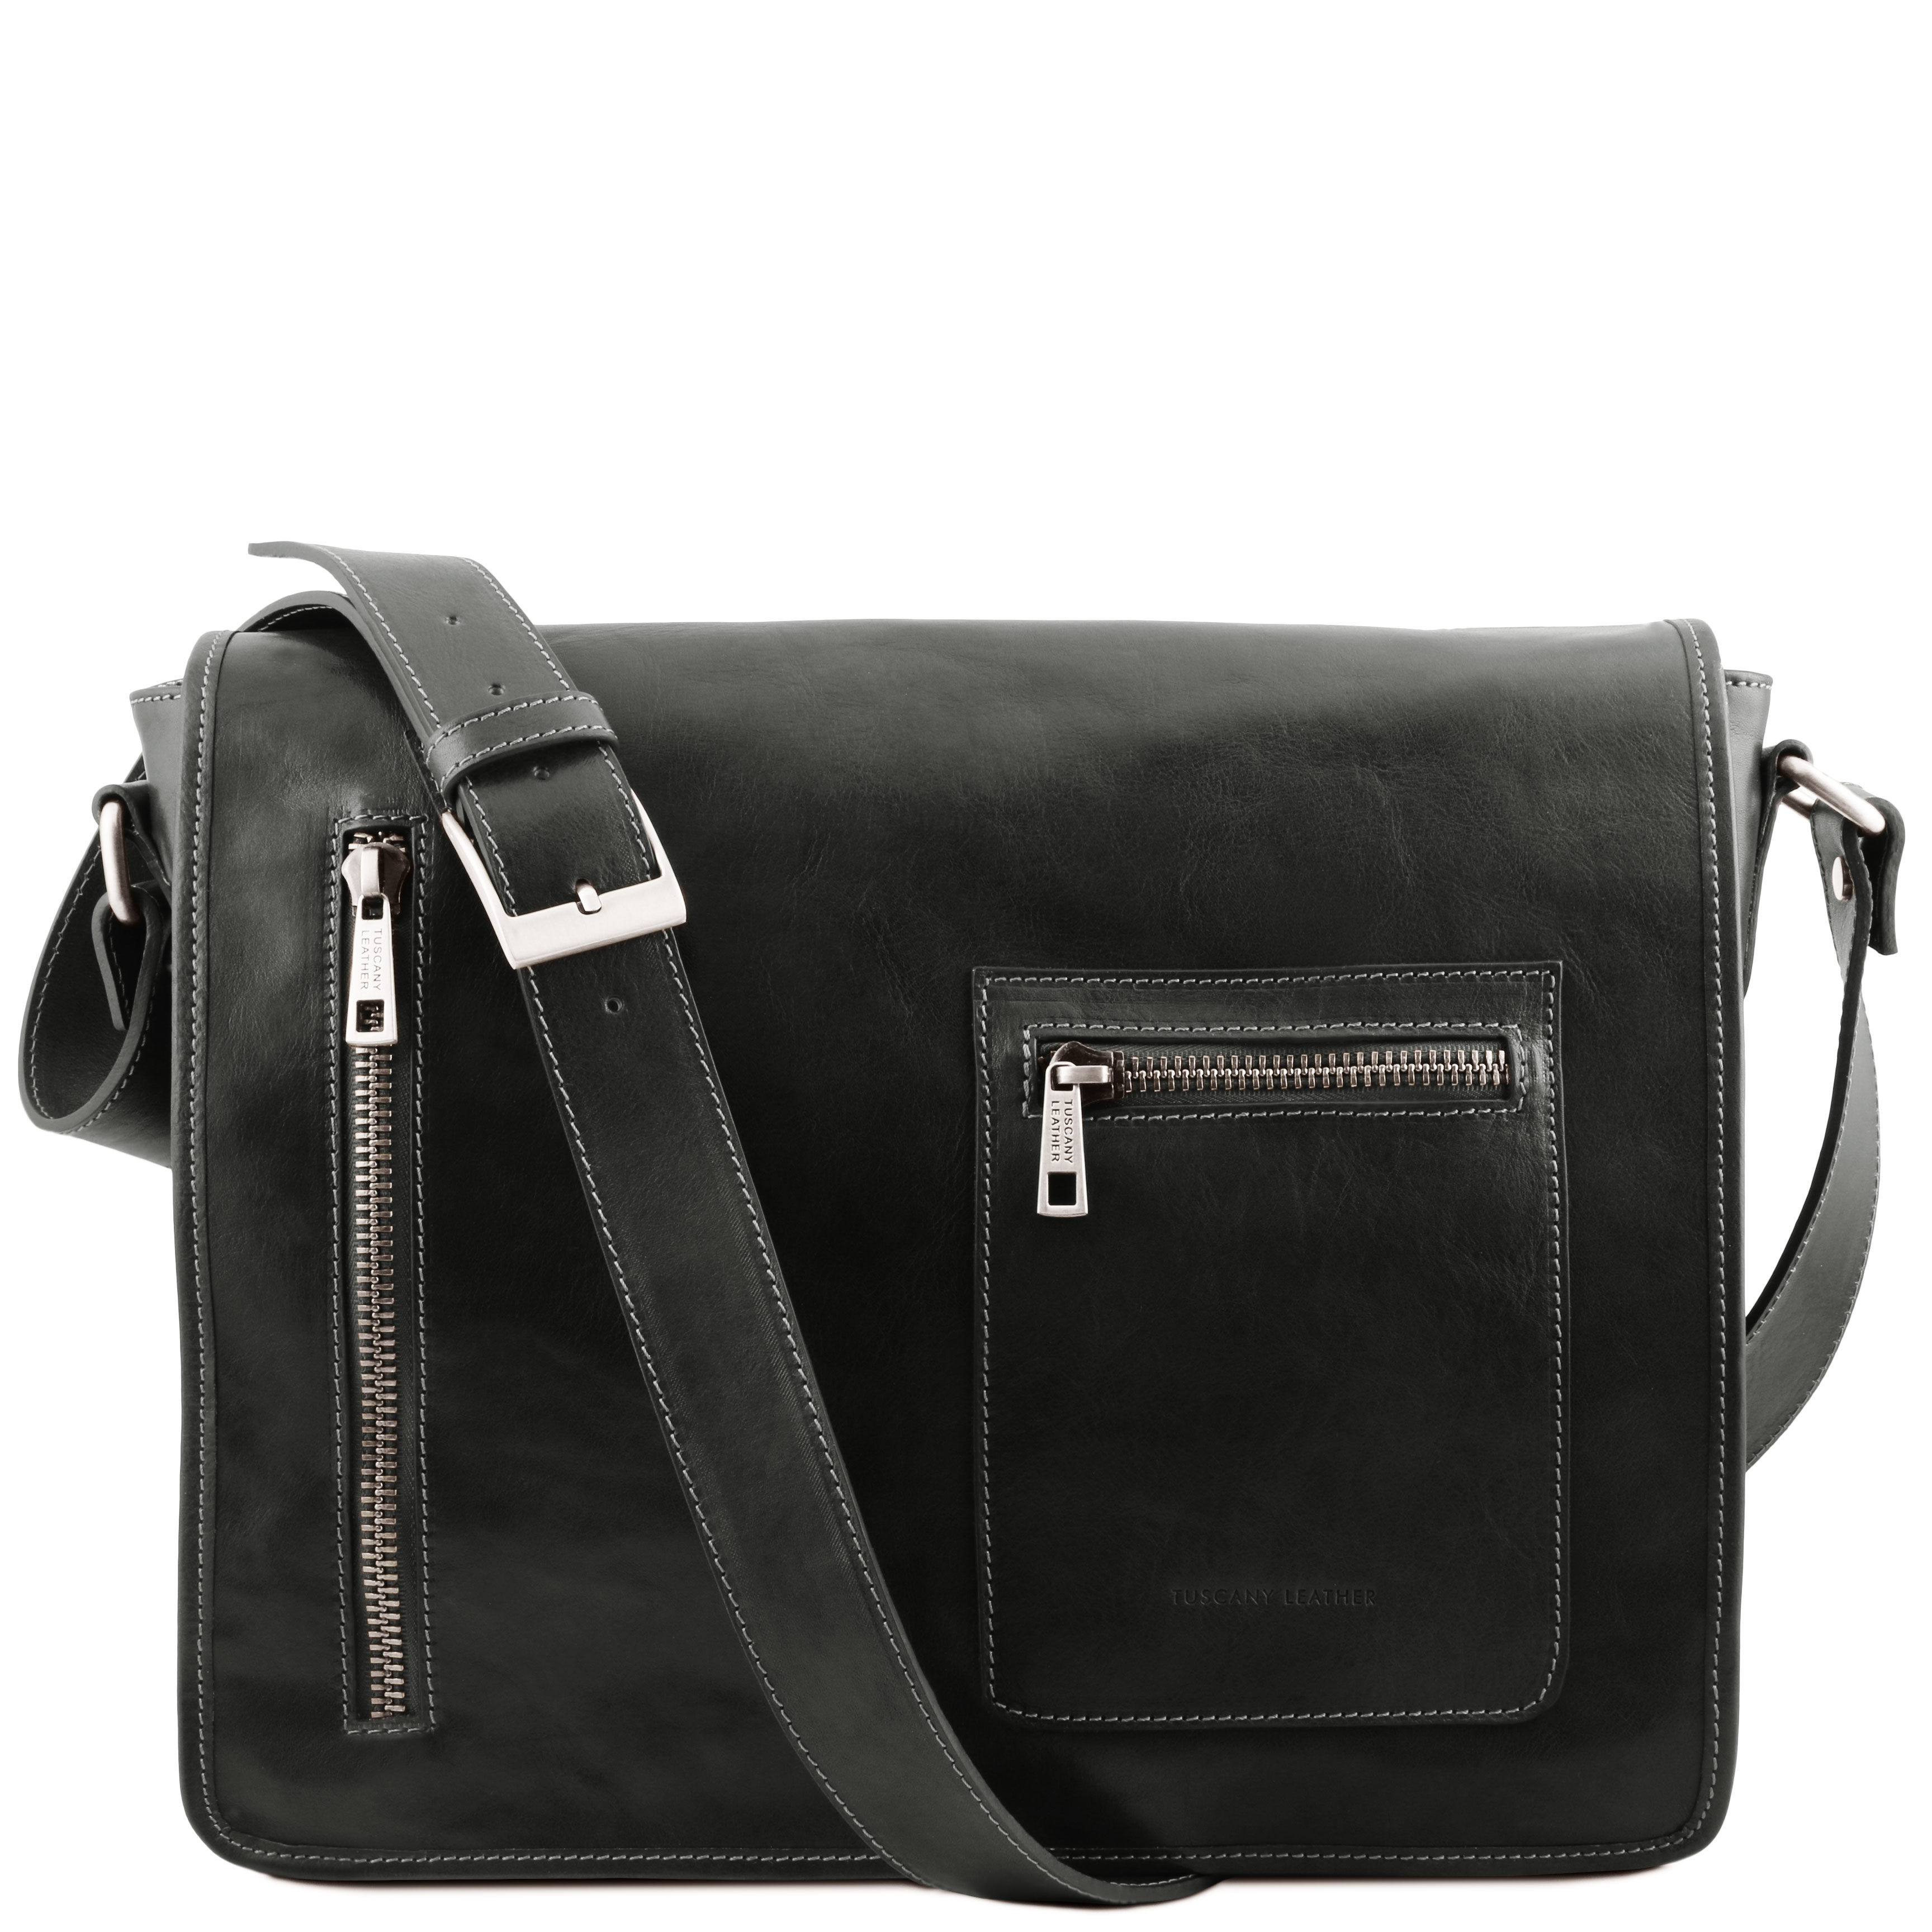 Geanta laptop Tuscany Leather tip messenger din piele neagra